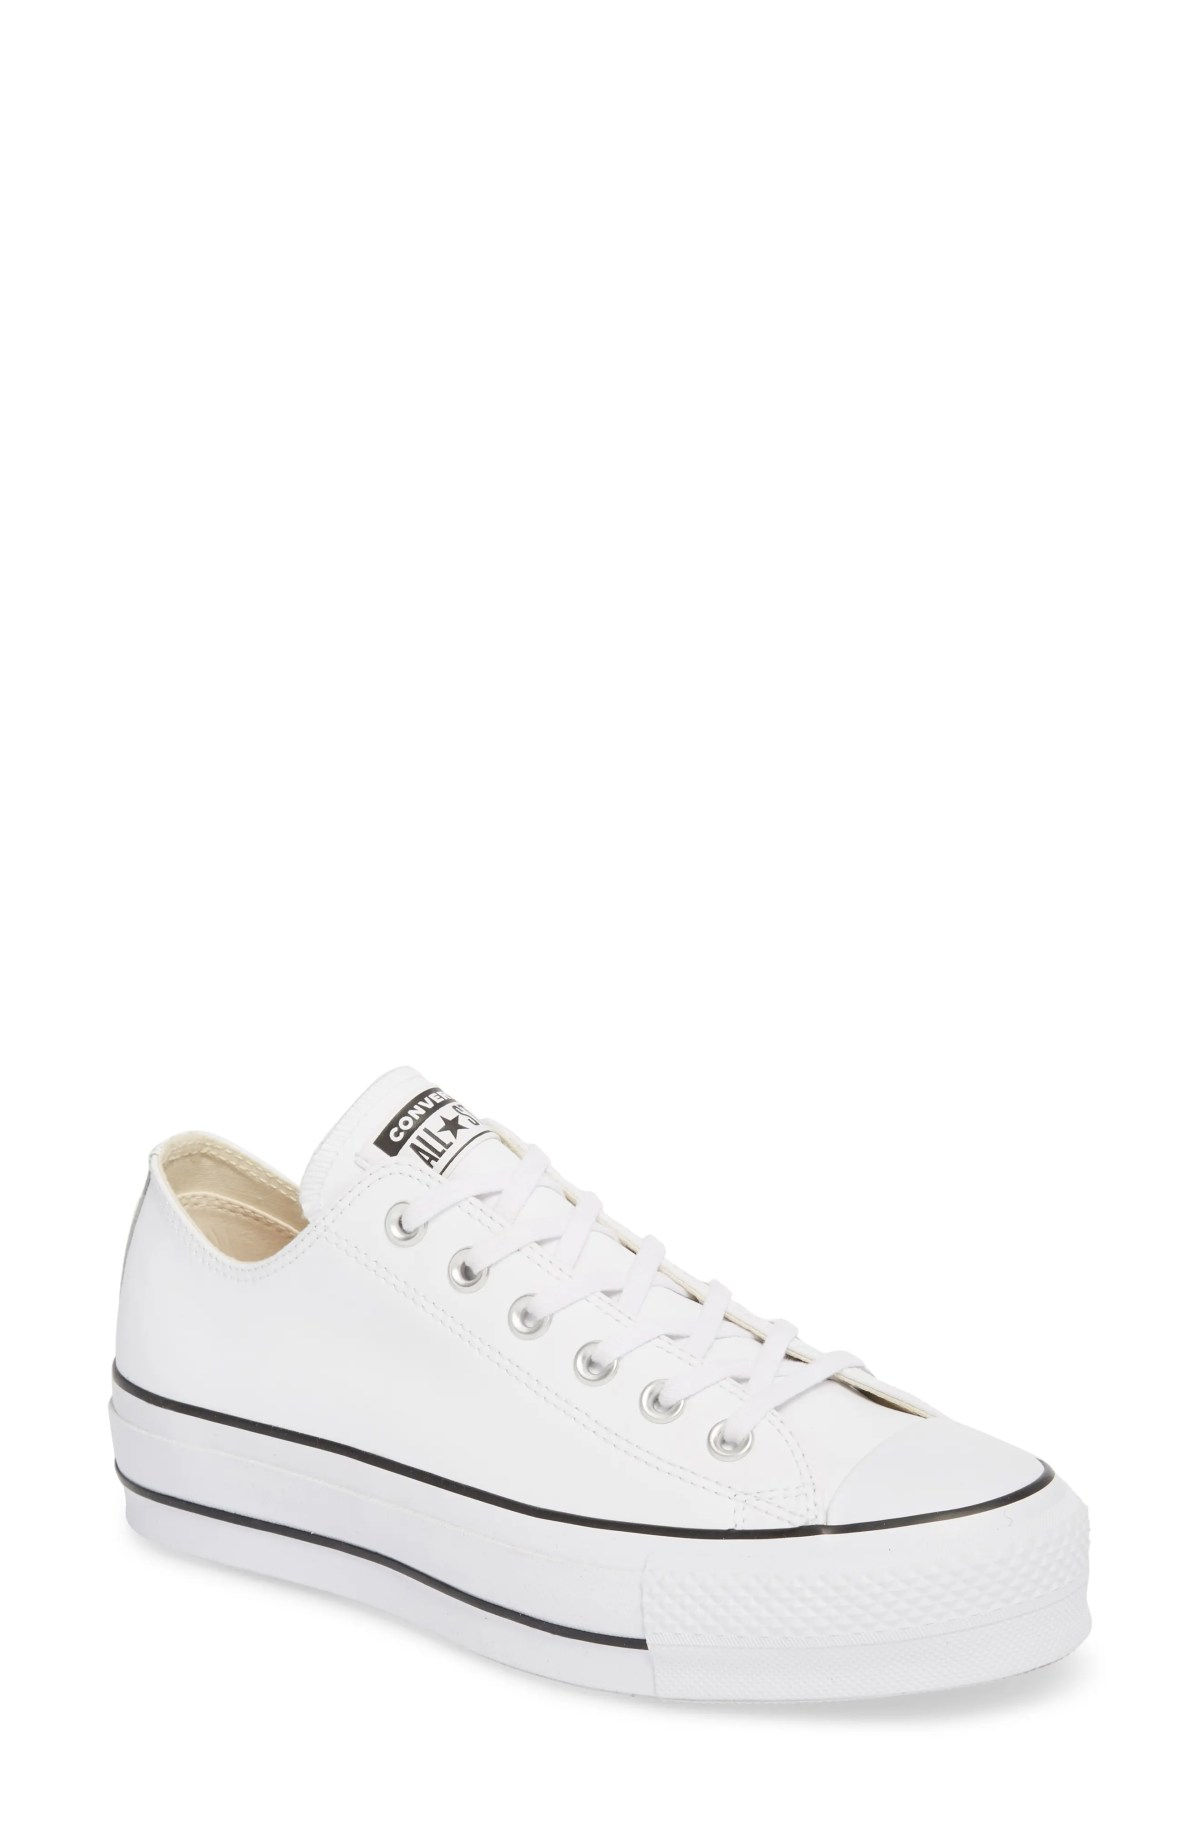 CONVERSE Chuck Taylor<sup>®</sup> All Star<sup>®</sup> Platform Sneaker, Main, color, WHITE LEATHER